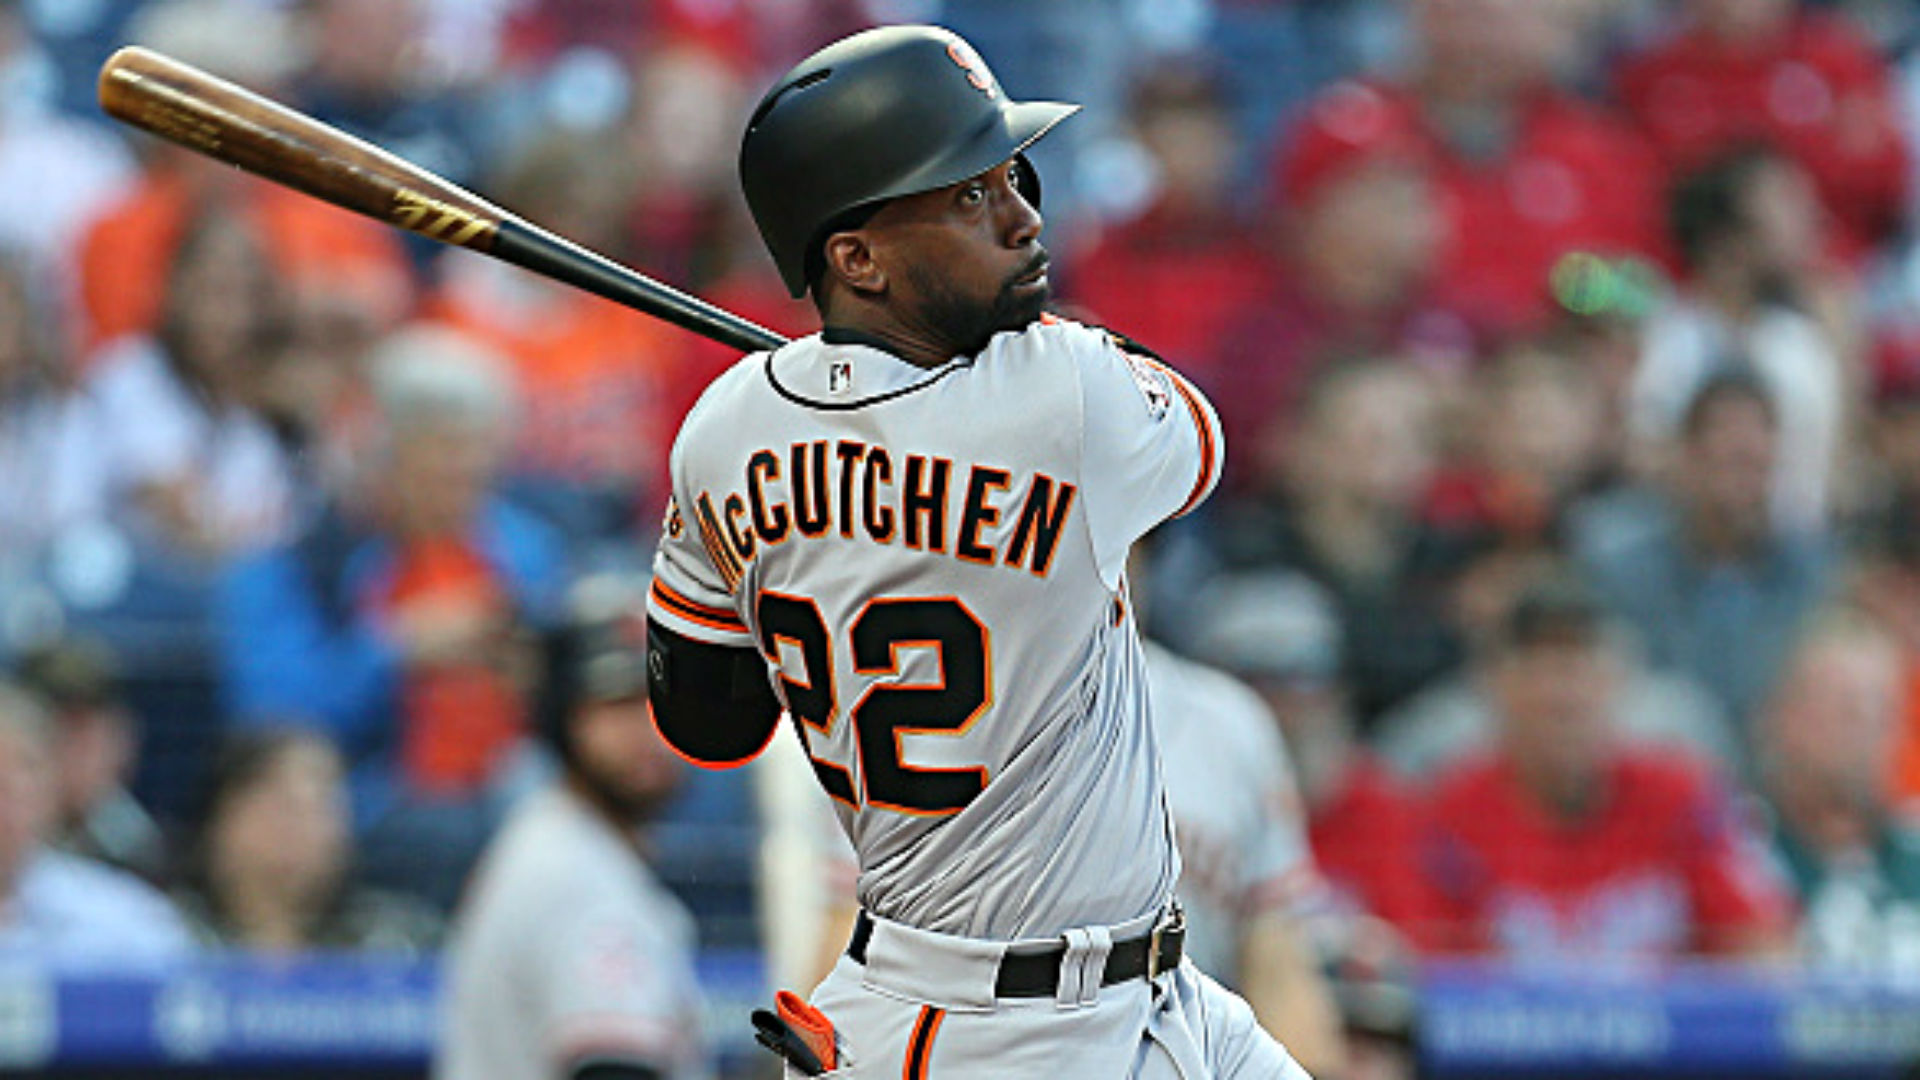 Pirates crush Giants in McCutchen's return to Pittsburgh